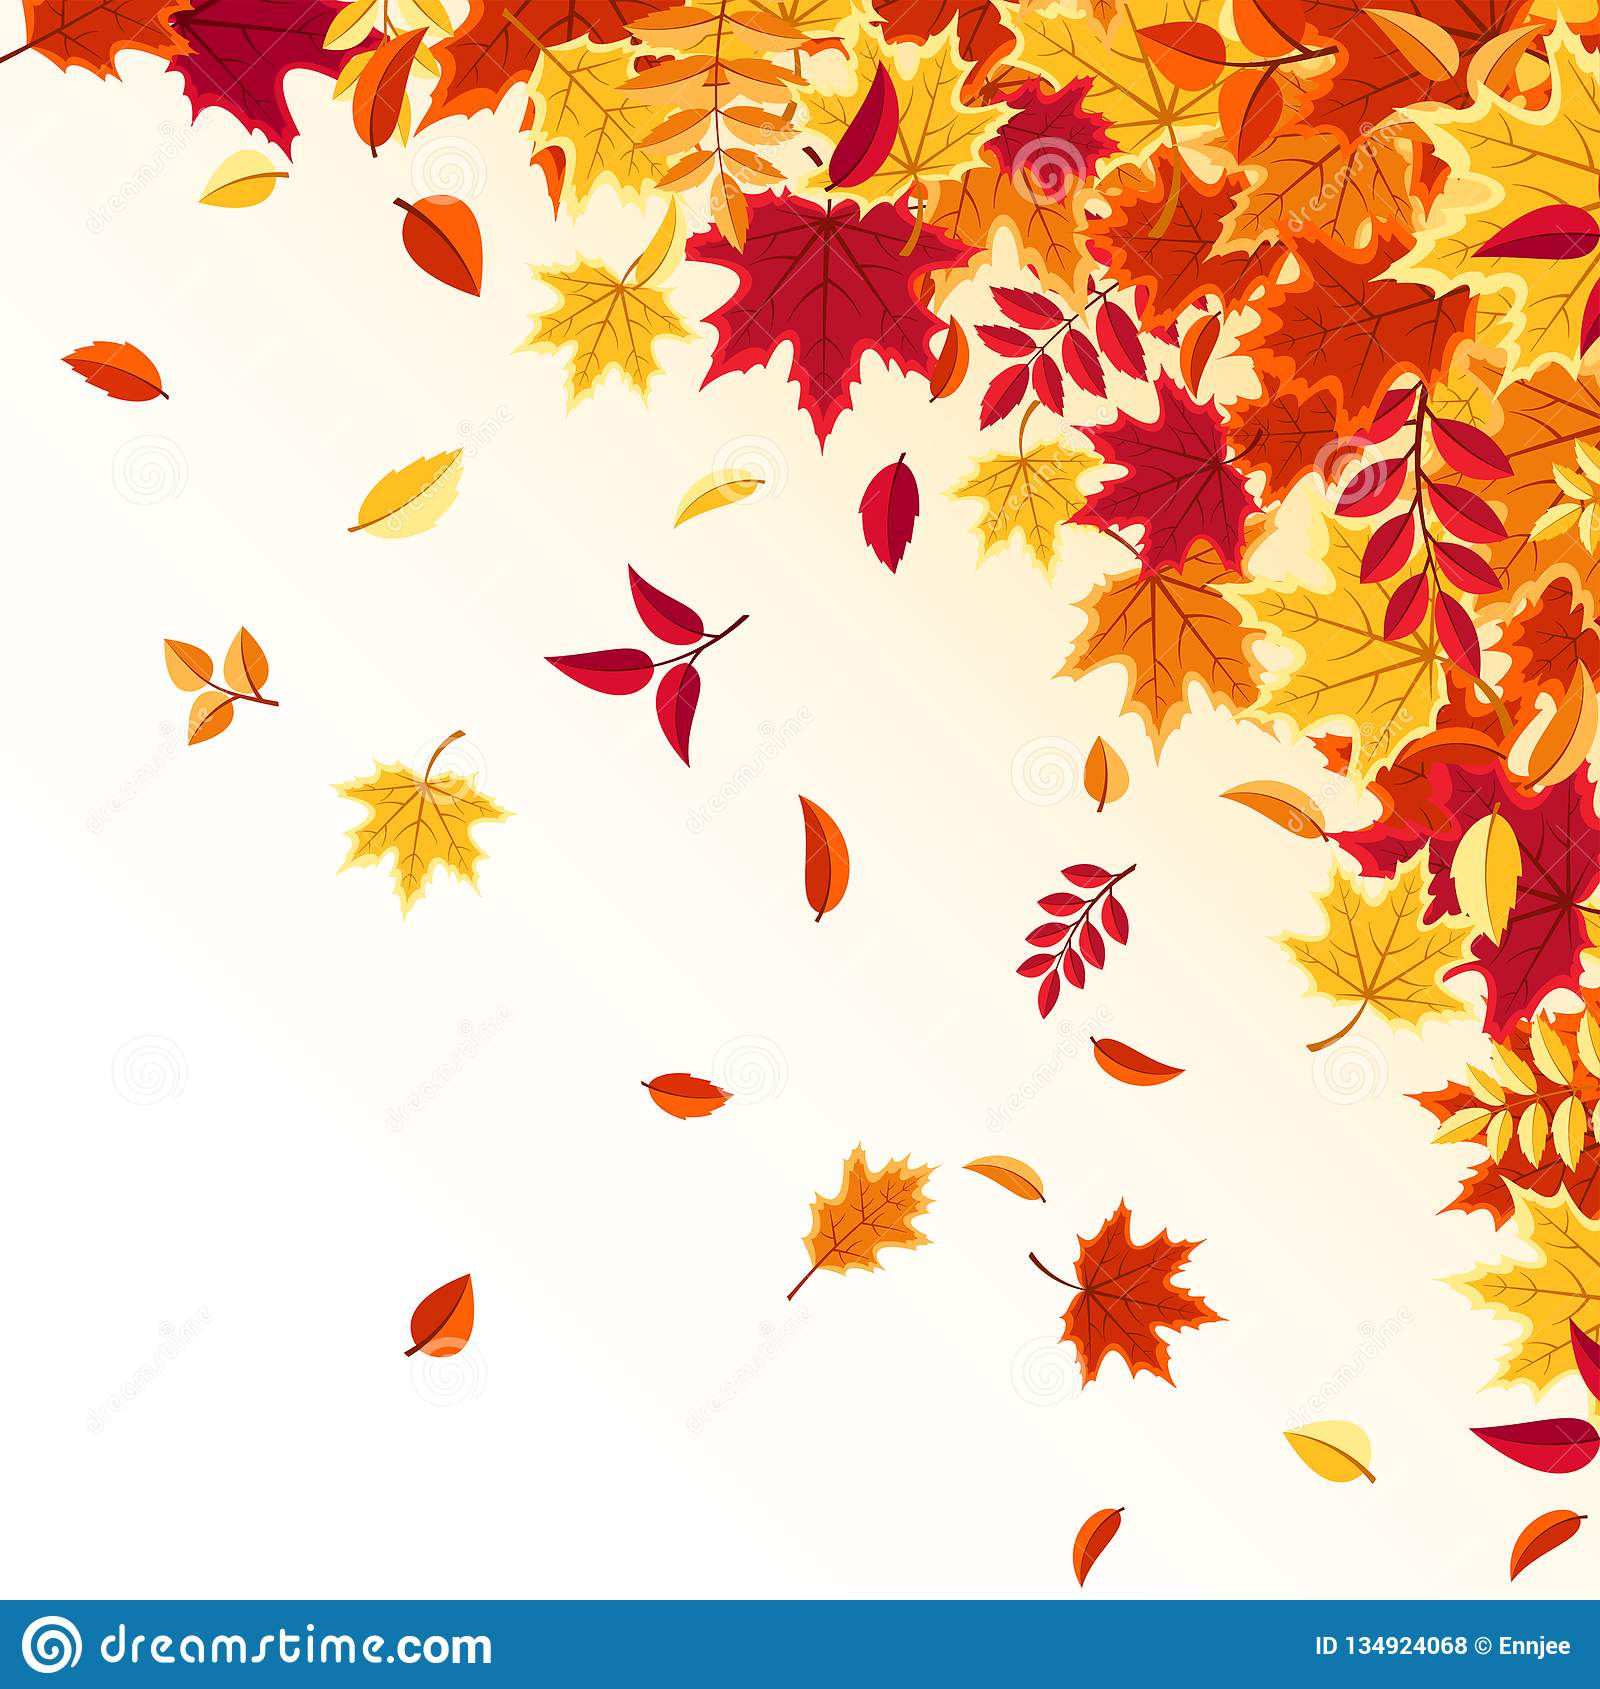 Autumn Falling Leaves Nature Background With Red Orange